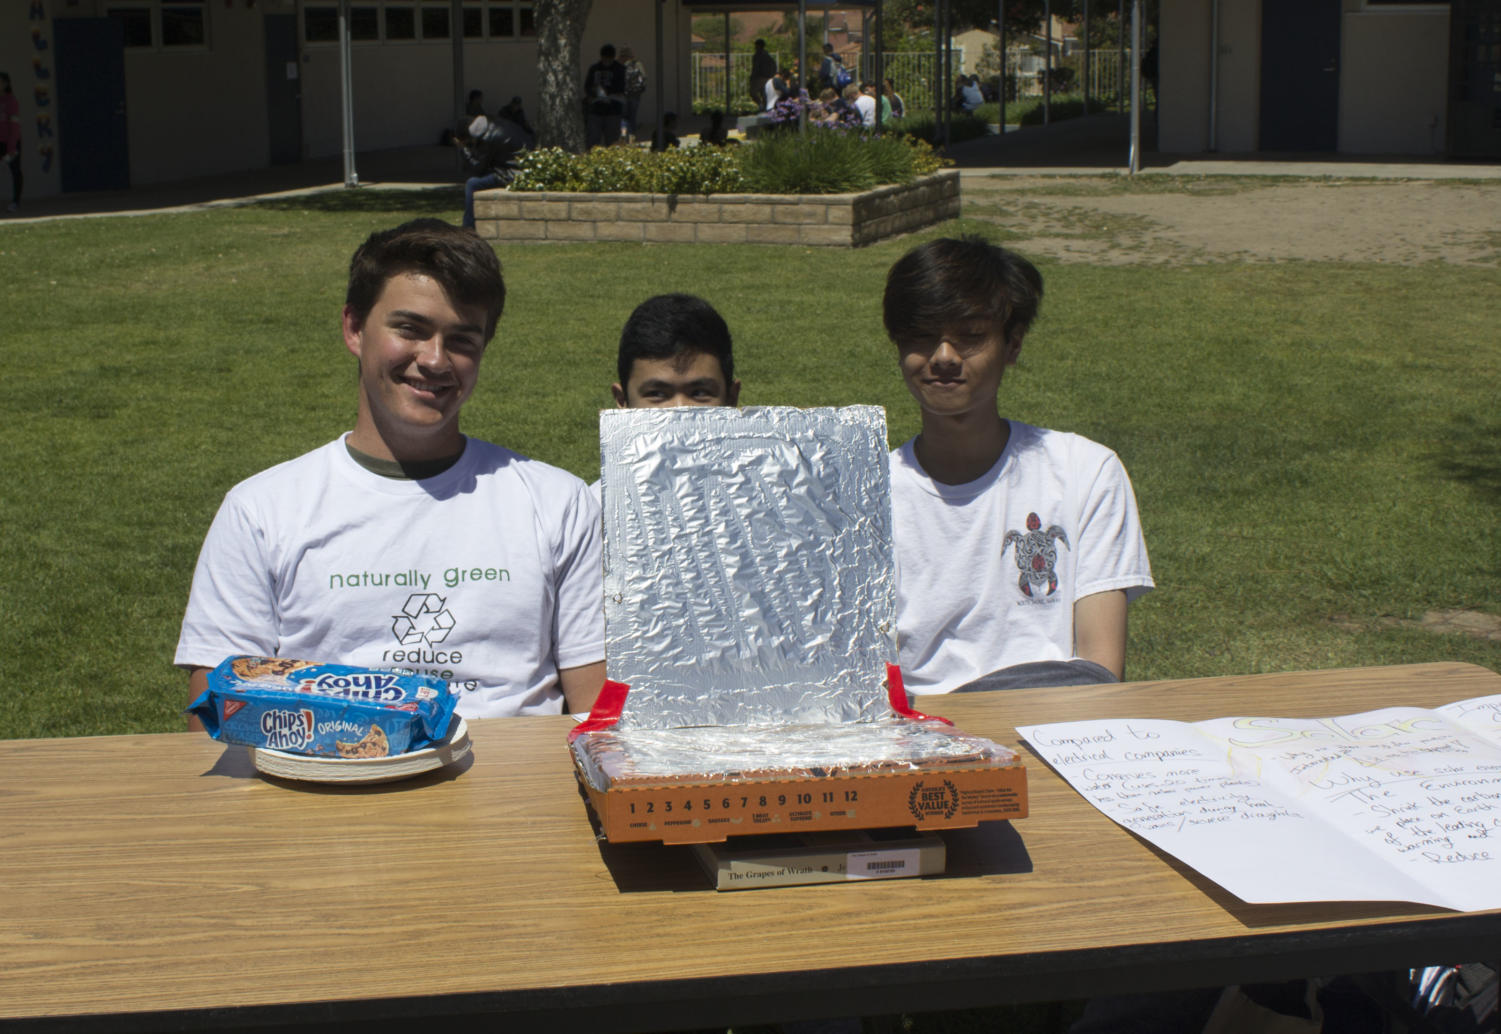 Photo By : Catherine Wolfe (from left to right) Kellen Barsley Junior, Jonathan Lao Junior , and Jon Puno Junior presenting a pizza box microwave at naturally green celebration.